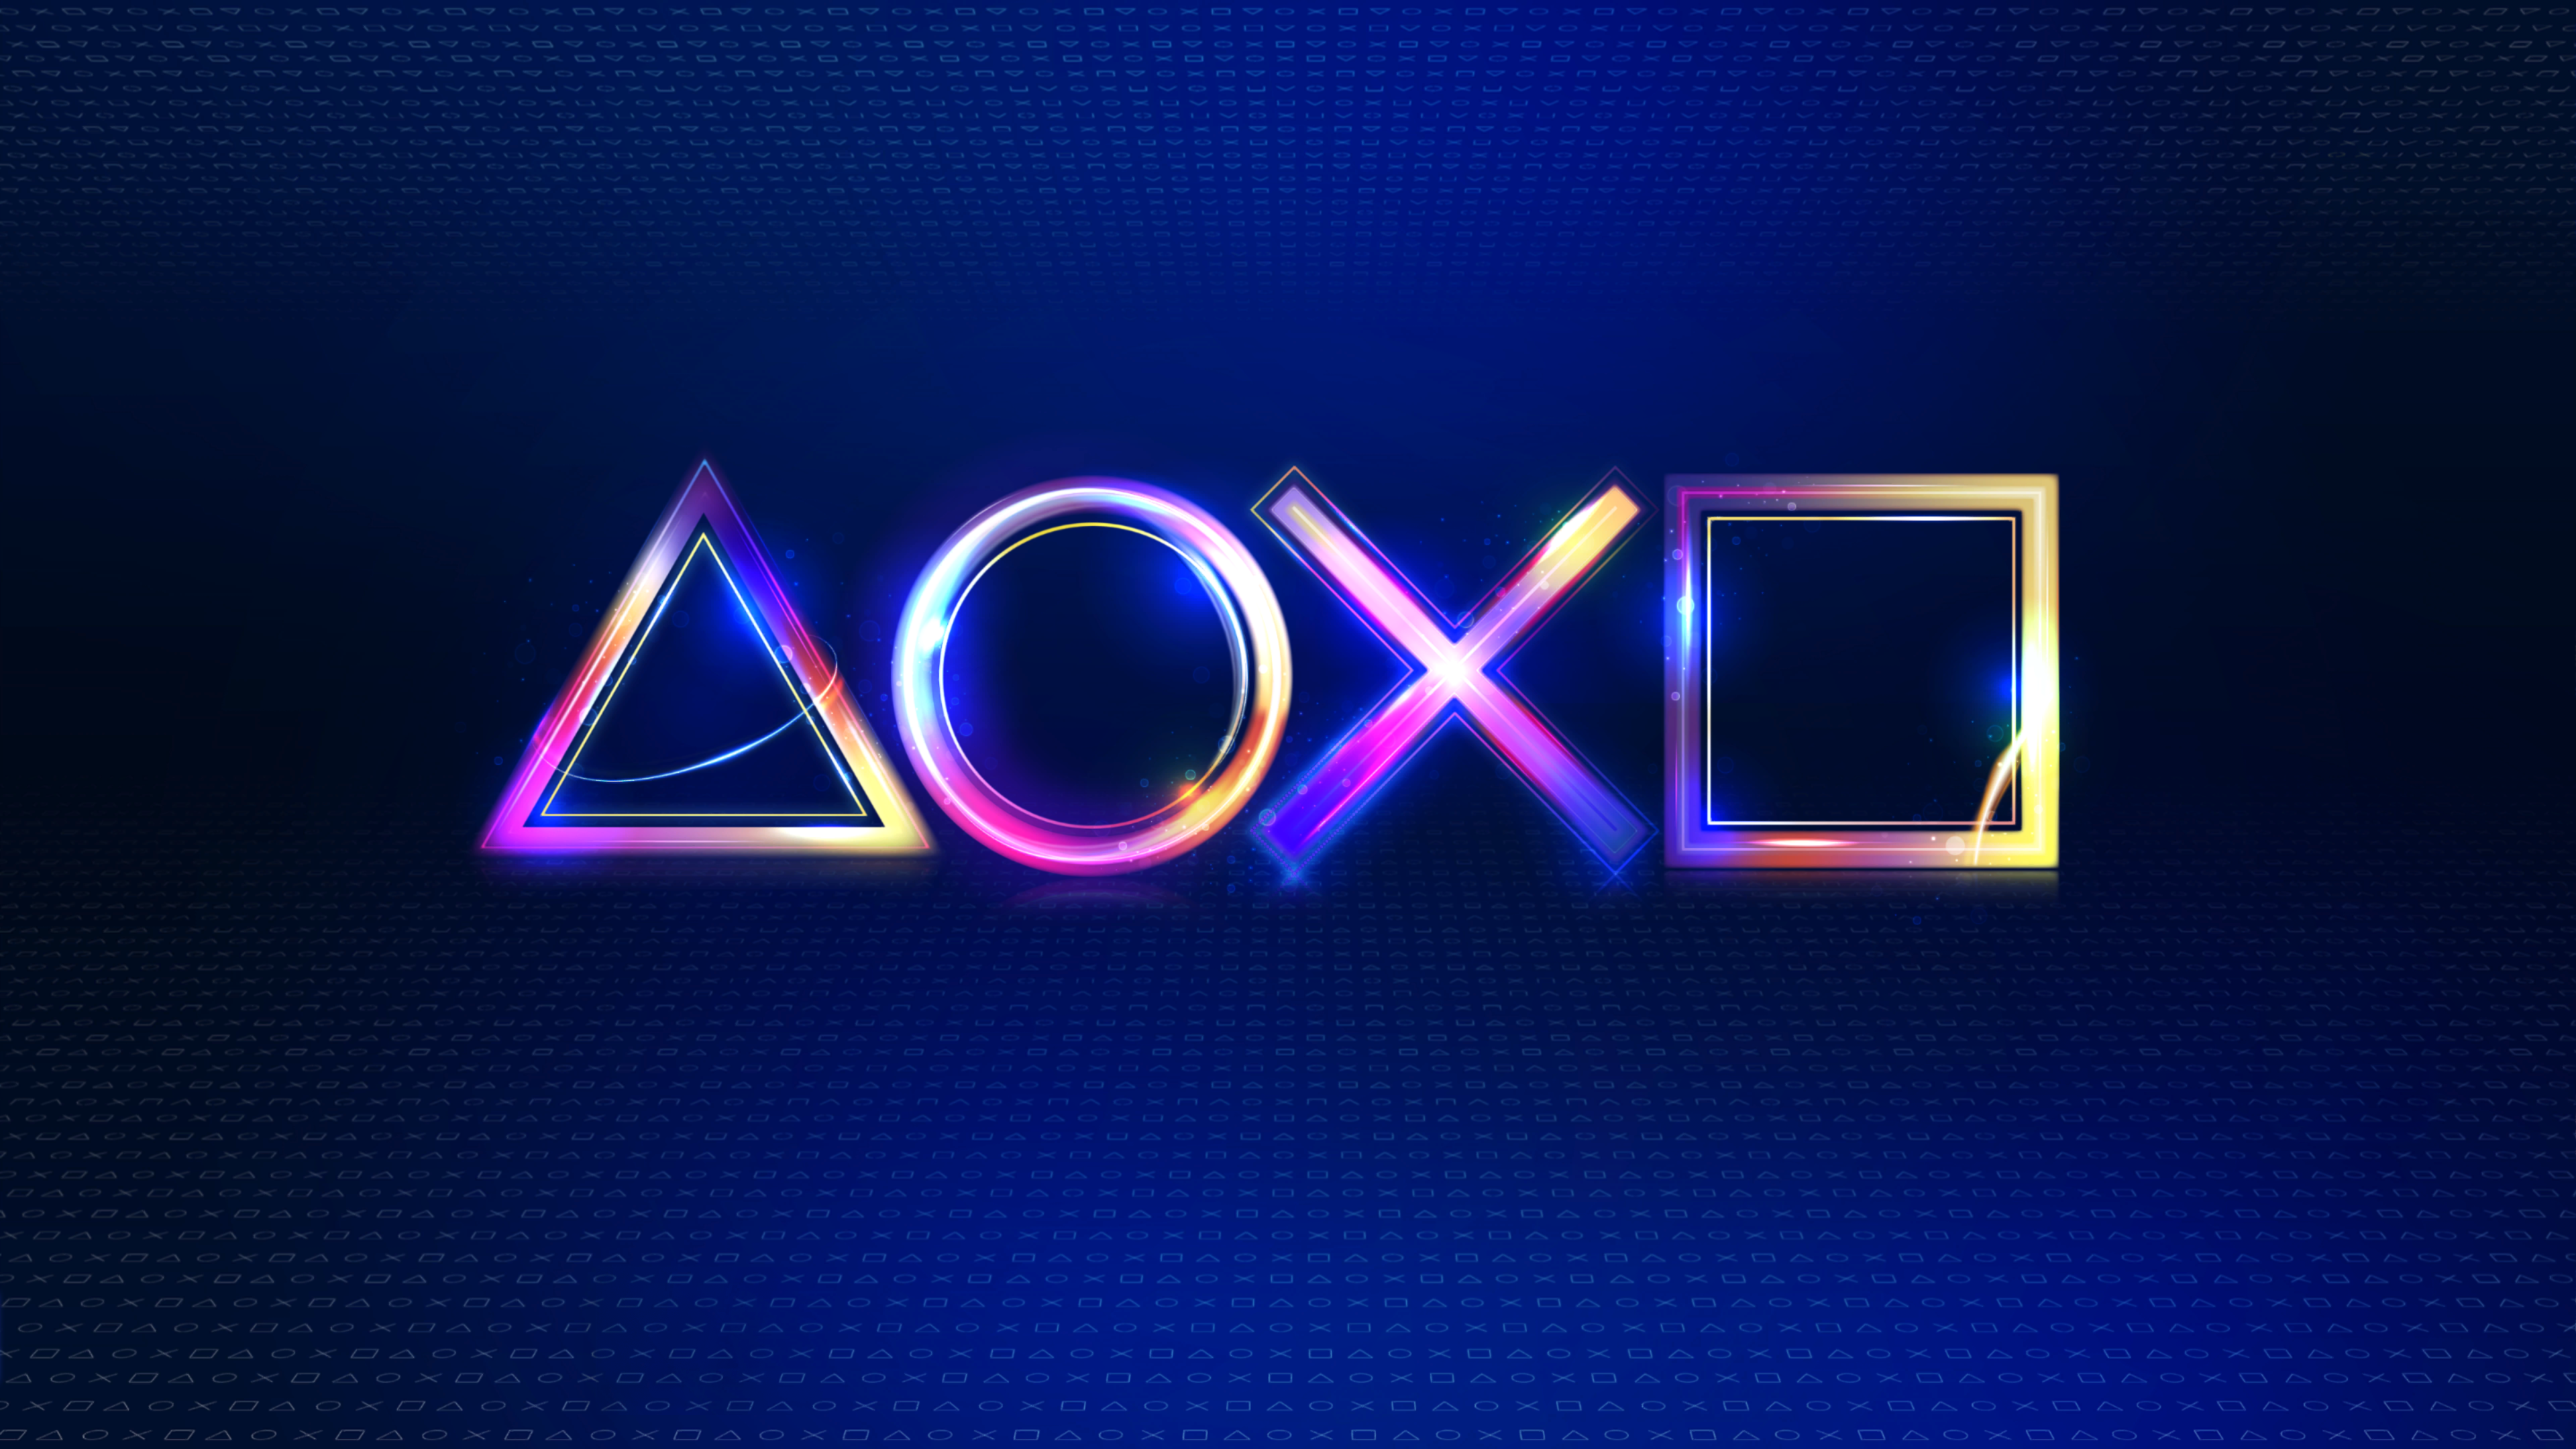 Cool Wallpaper For Ps4